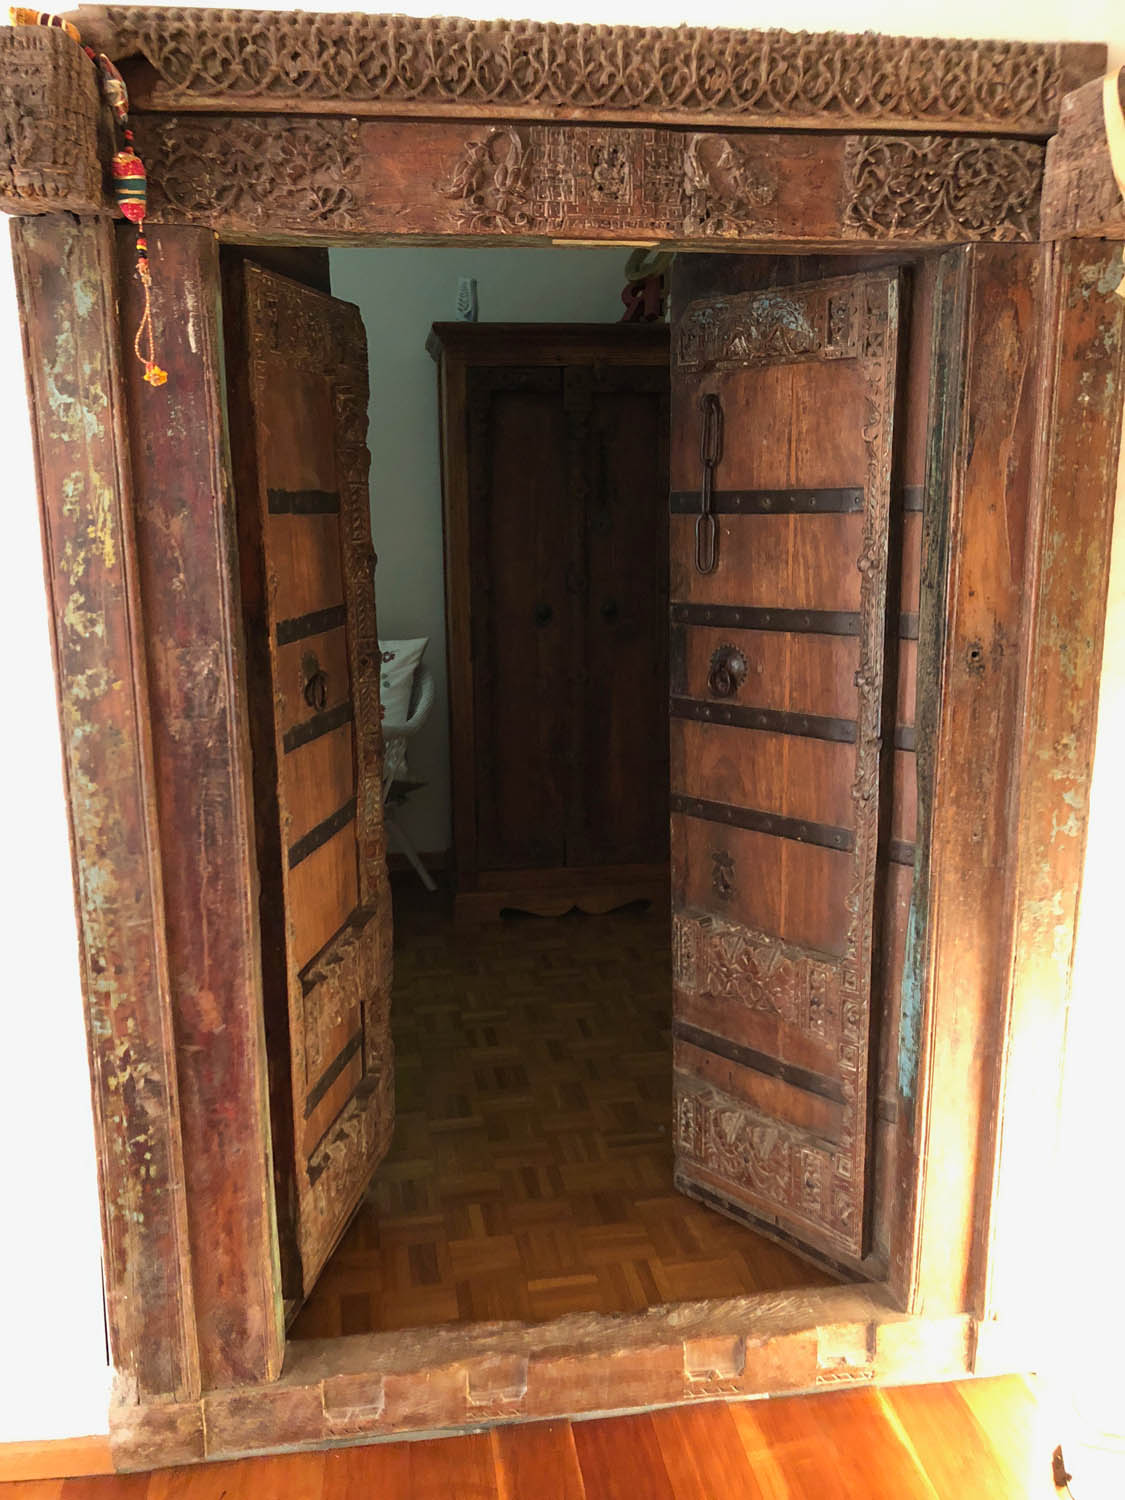 Doors leading to my bedroom in Florence, Italy